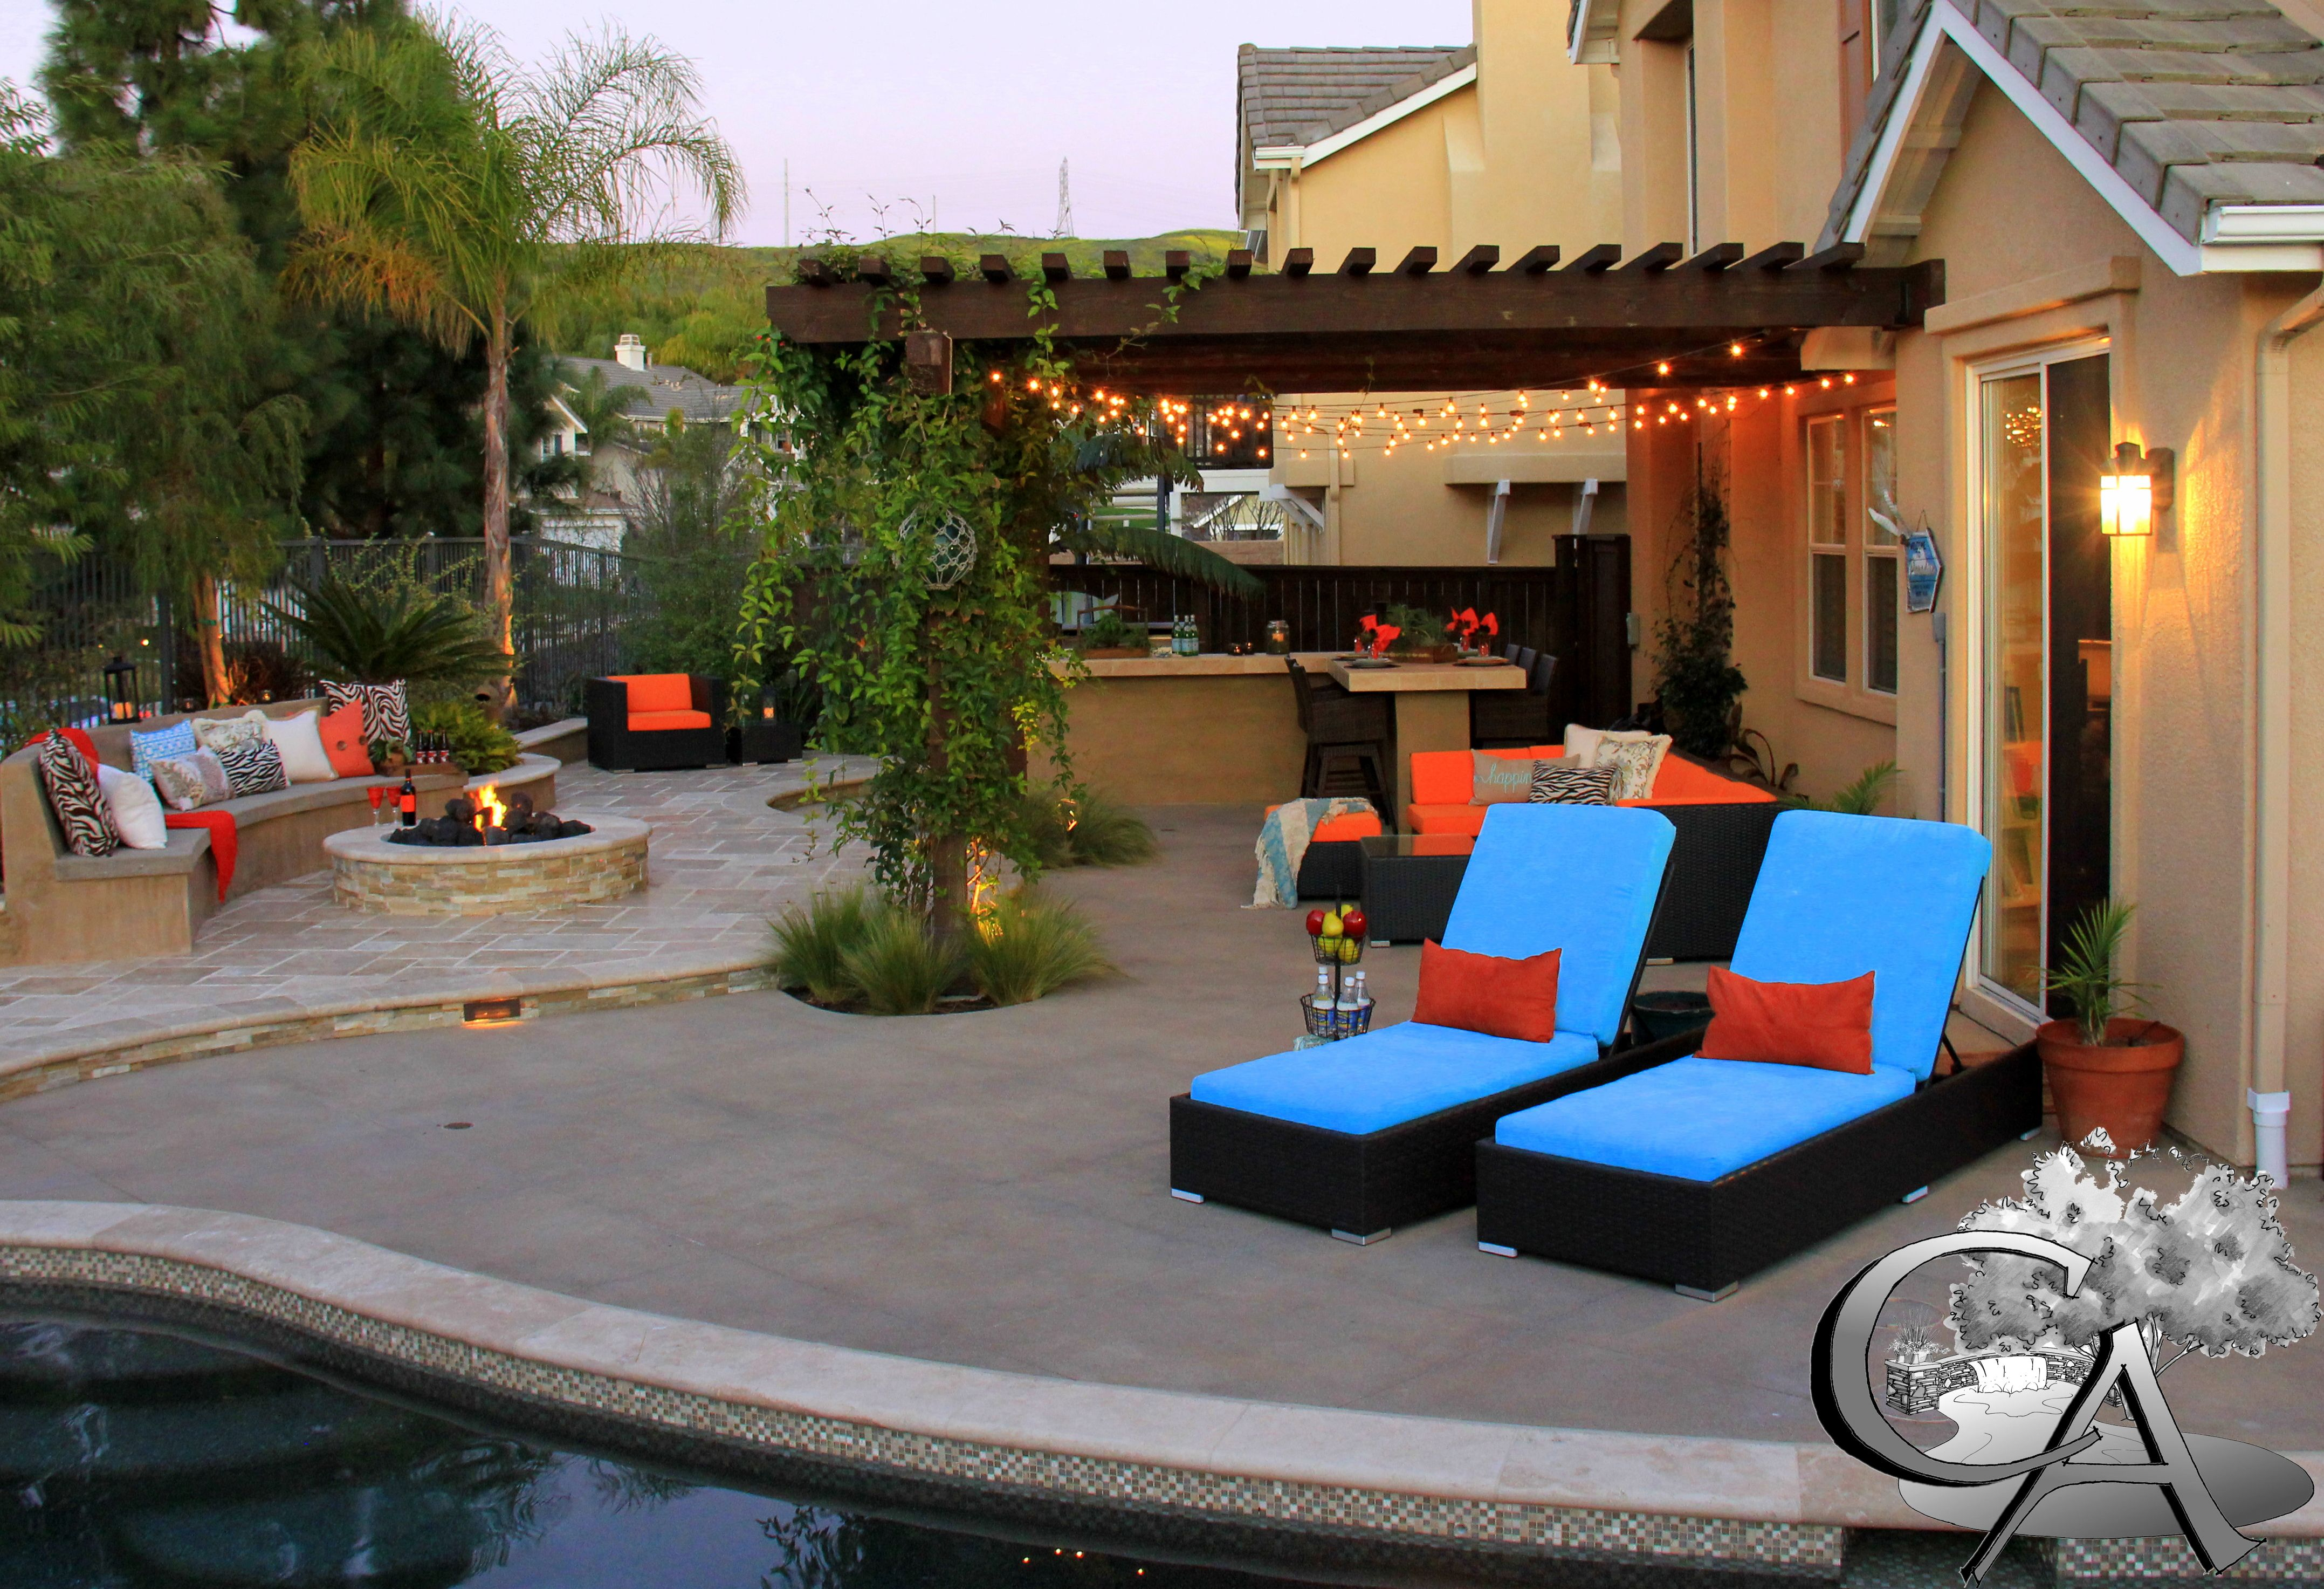 69528c8fcaf7919d22fc97cce75c5cc4 Top Result 50 Awesome Cost Of Outdoor Fireplace Picture 2018 Zat3